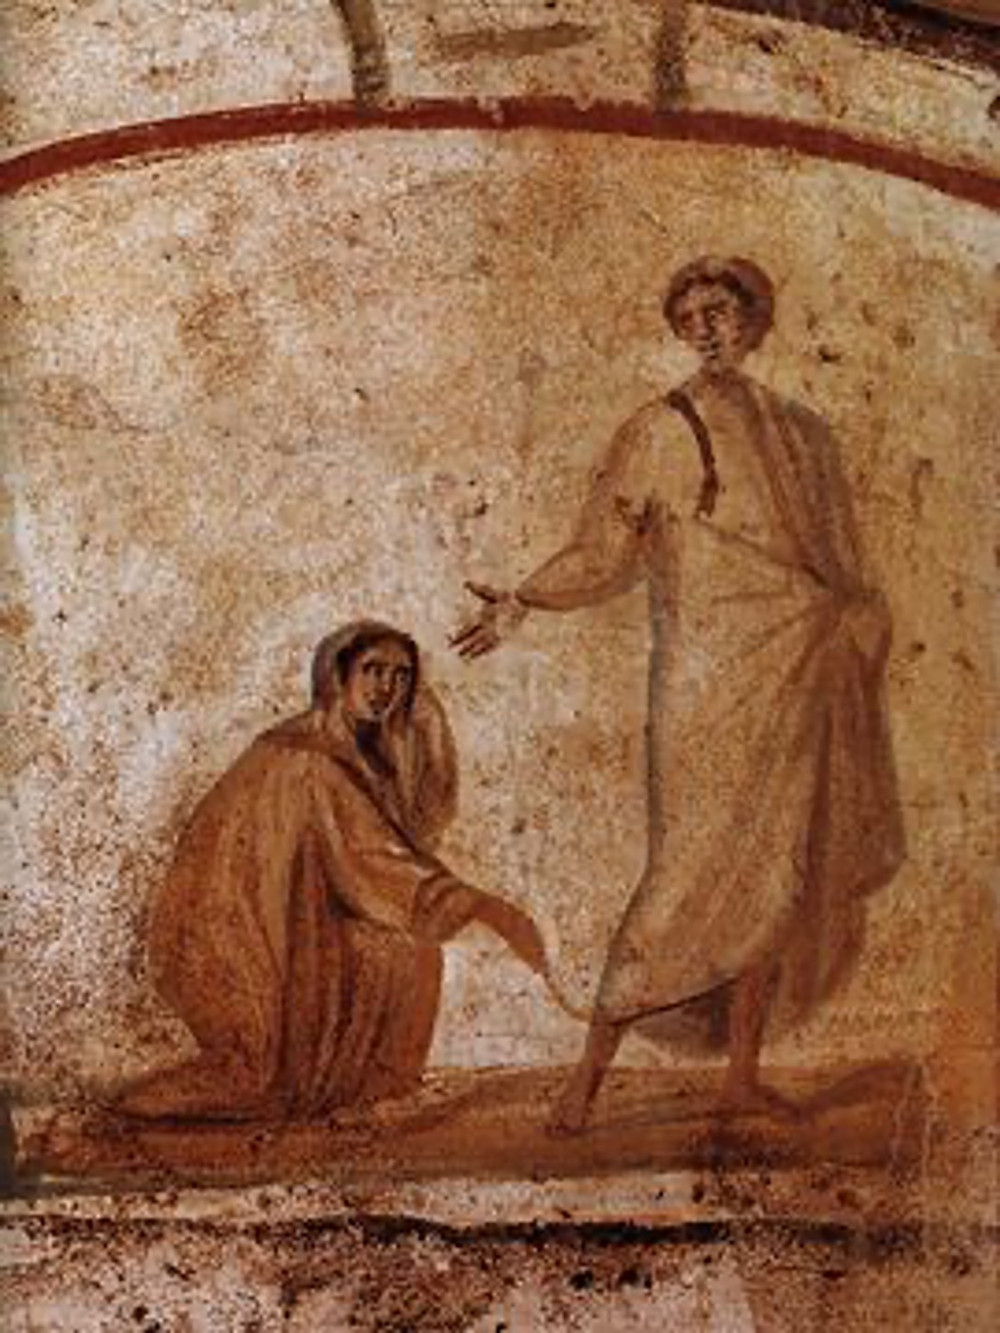 Christ Healing a bleeding woman, as depicted in the Catacombs of Marcellinus and Peter. This is a faithful photographic reproduction of a two-dimensional, public domain work of art.